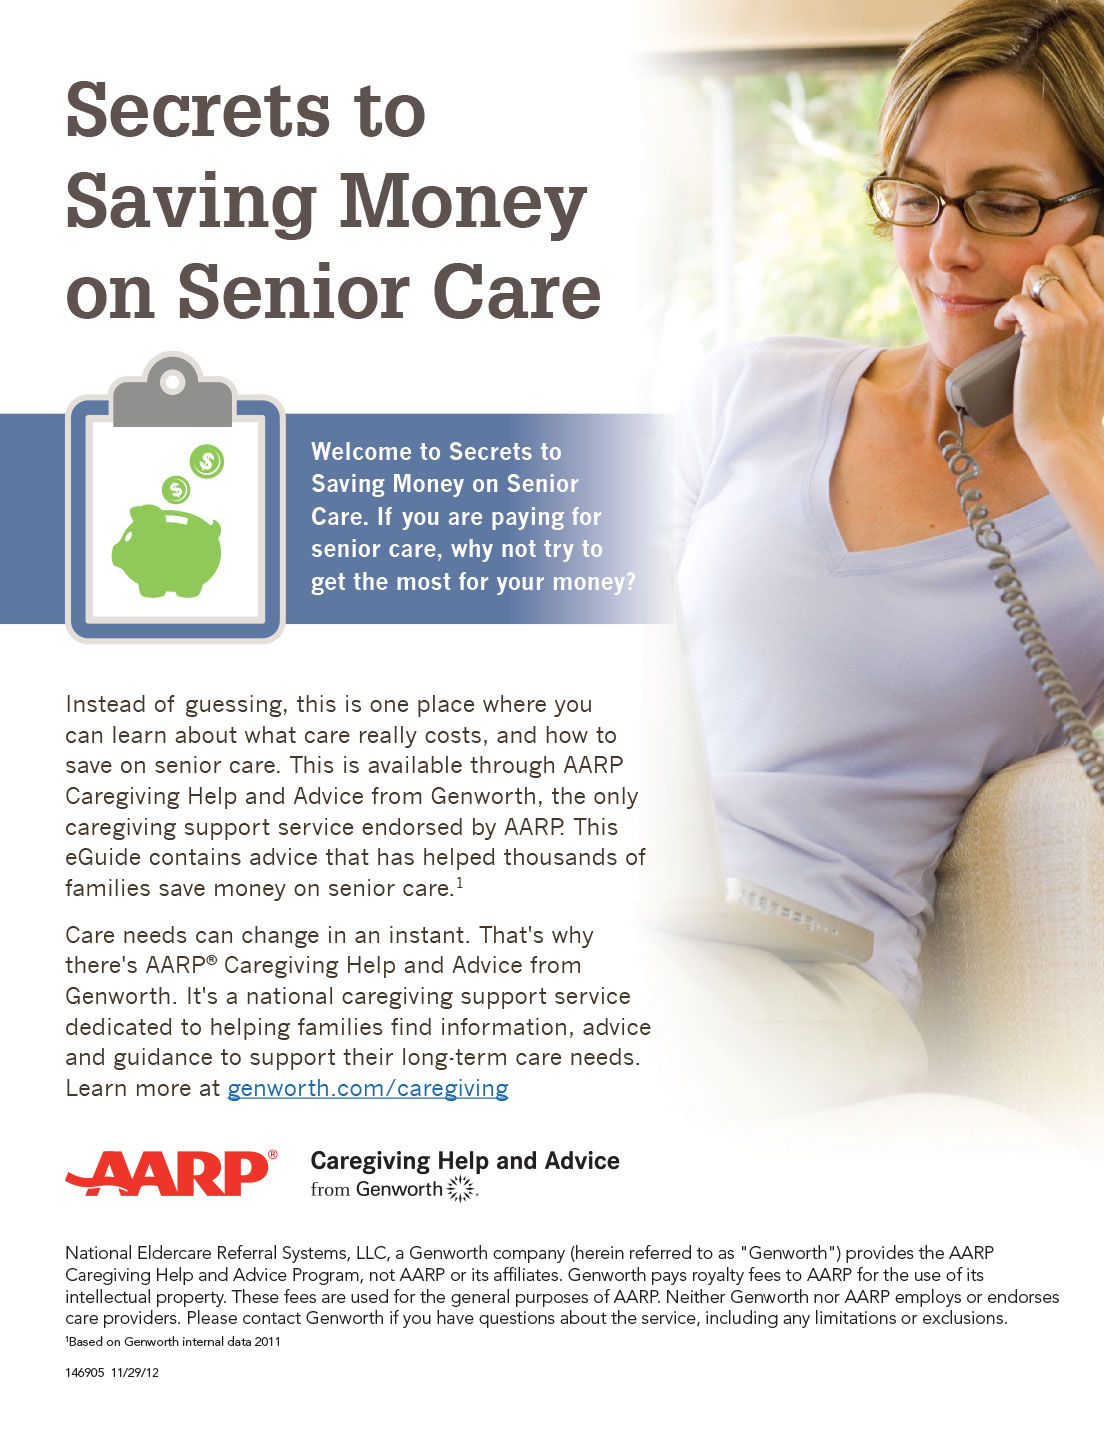 EGuide Design for AARP Caregiving Help And Advice From Genworth